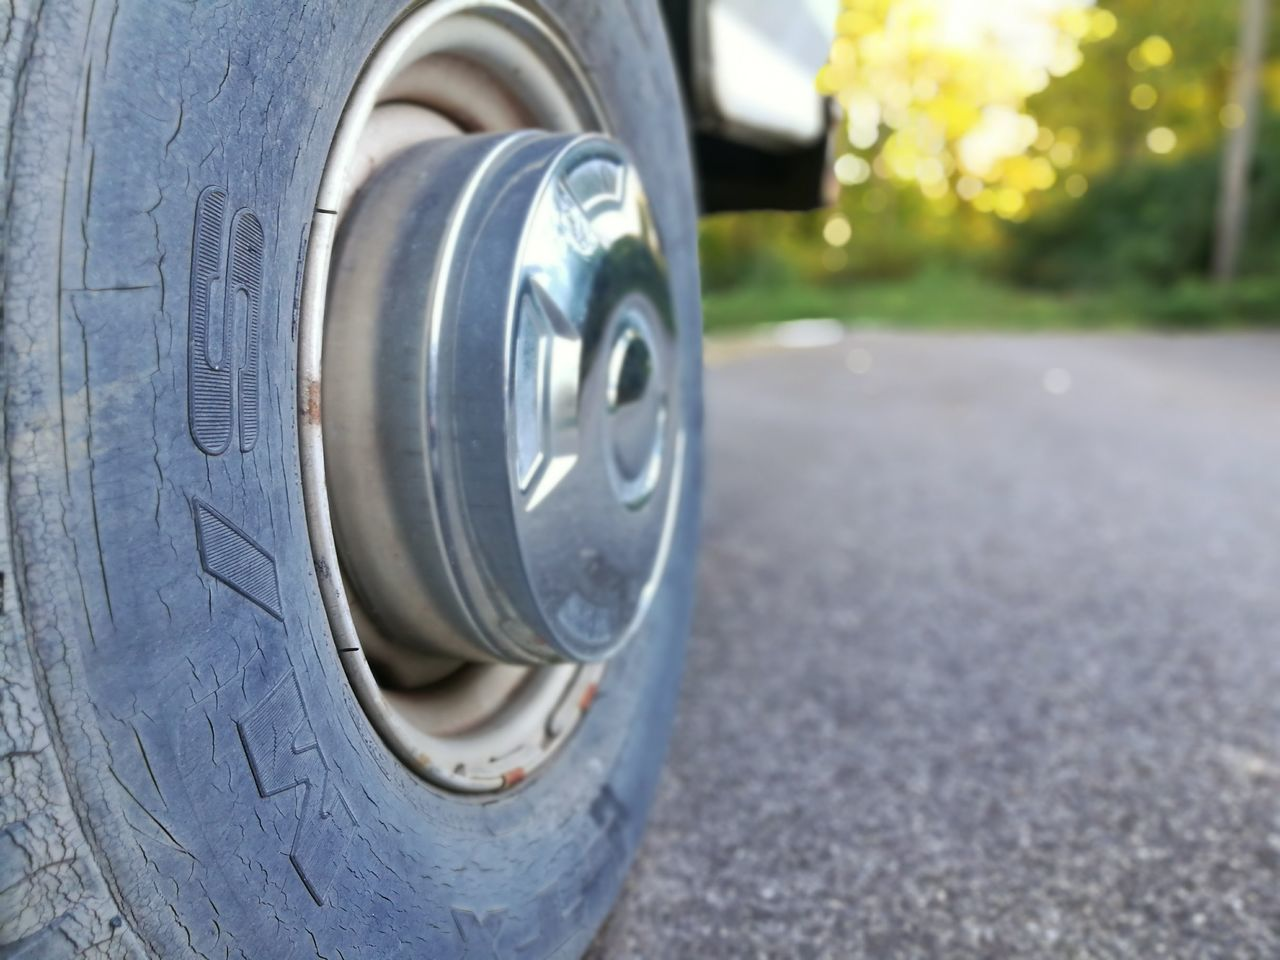 close-up, metal, no people, focus on foreground, day, outdoors, land vehicle